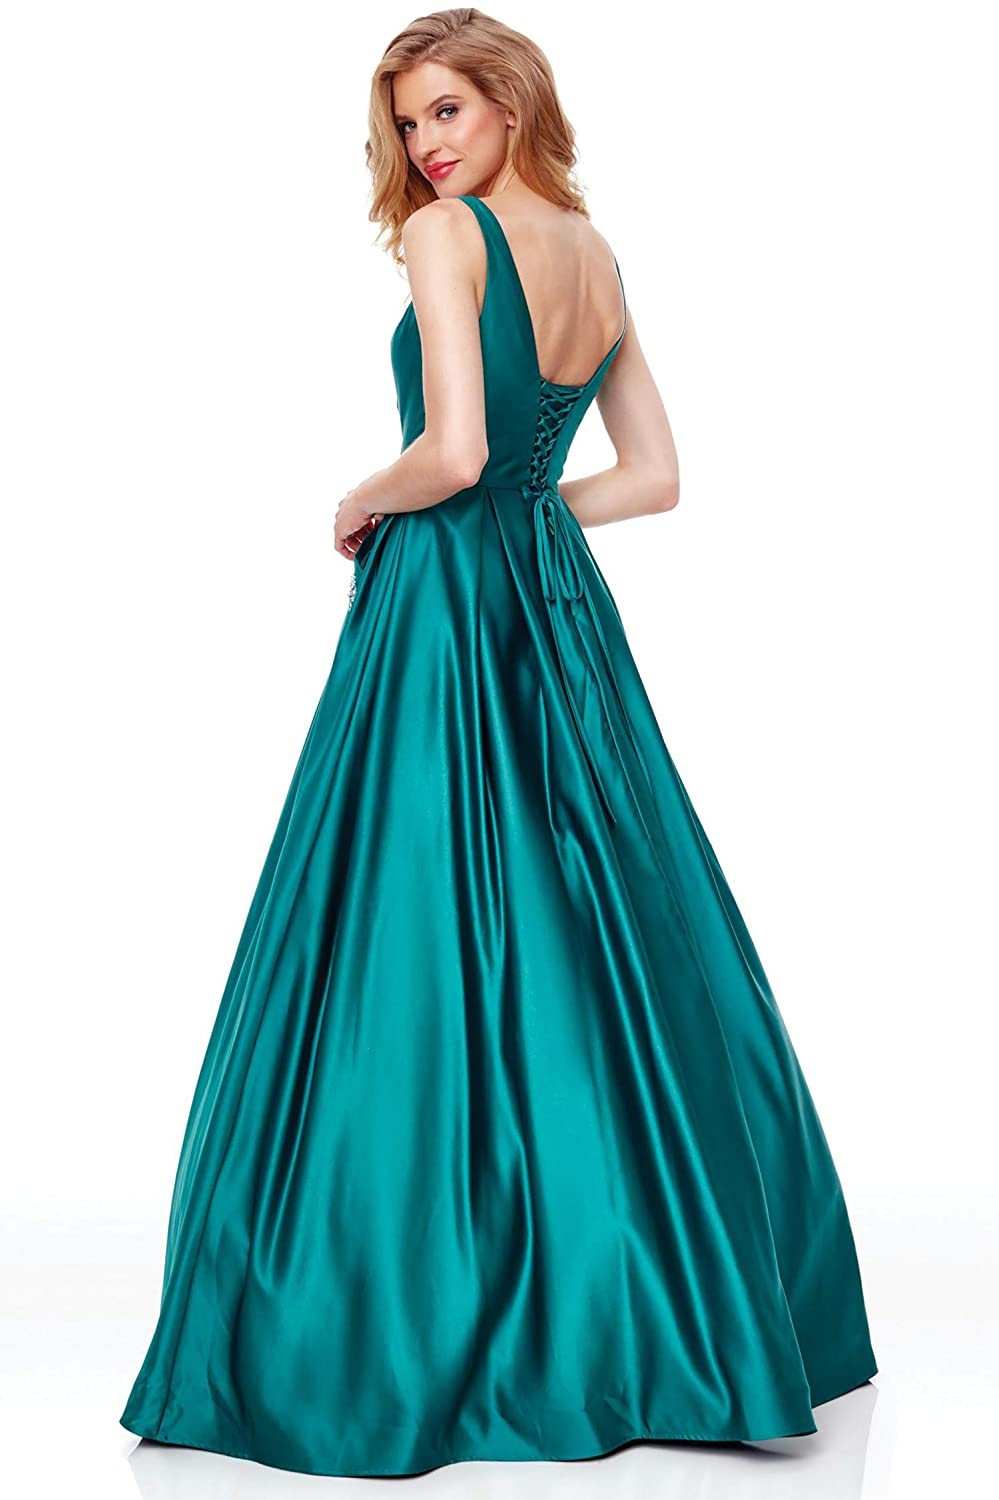 16c8a002d332 Zhongde Women's V Neck Open Back Beaded Satin Prom Dress Long Formal  Evening Gown with Pockets at Amazon Women's Clothing store: